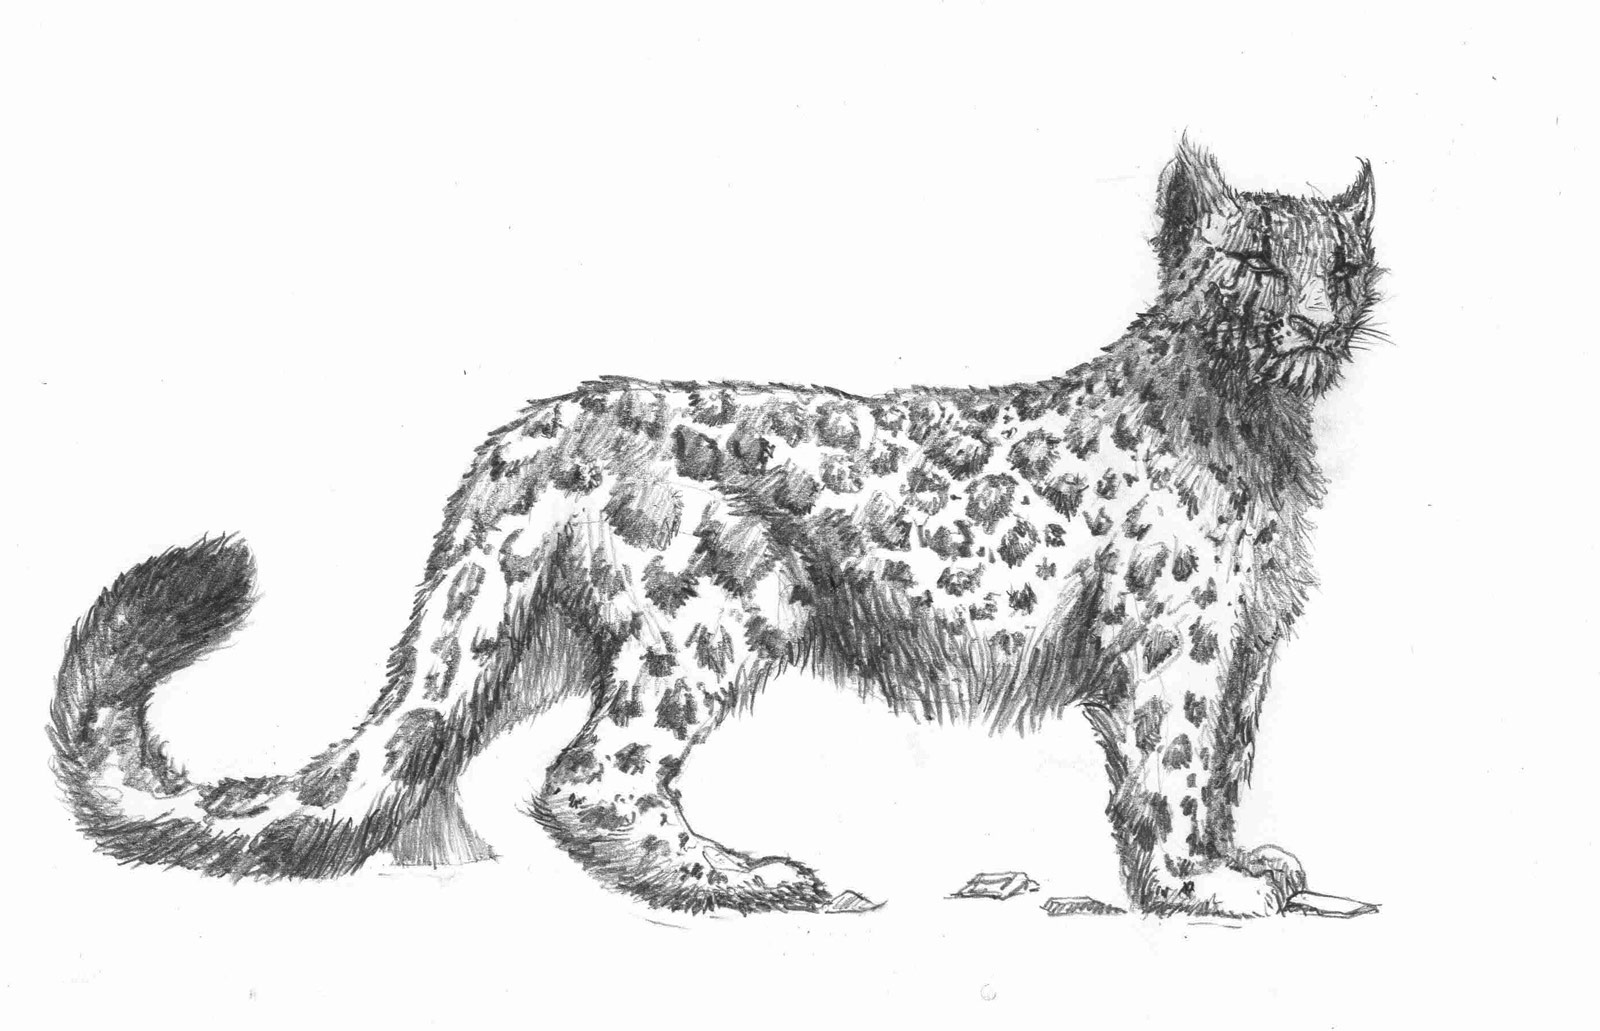 Snow leopard drawing - photo#18